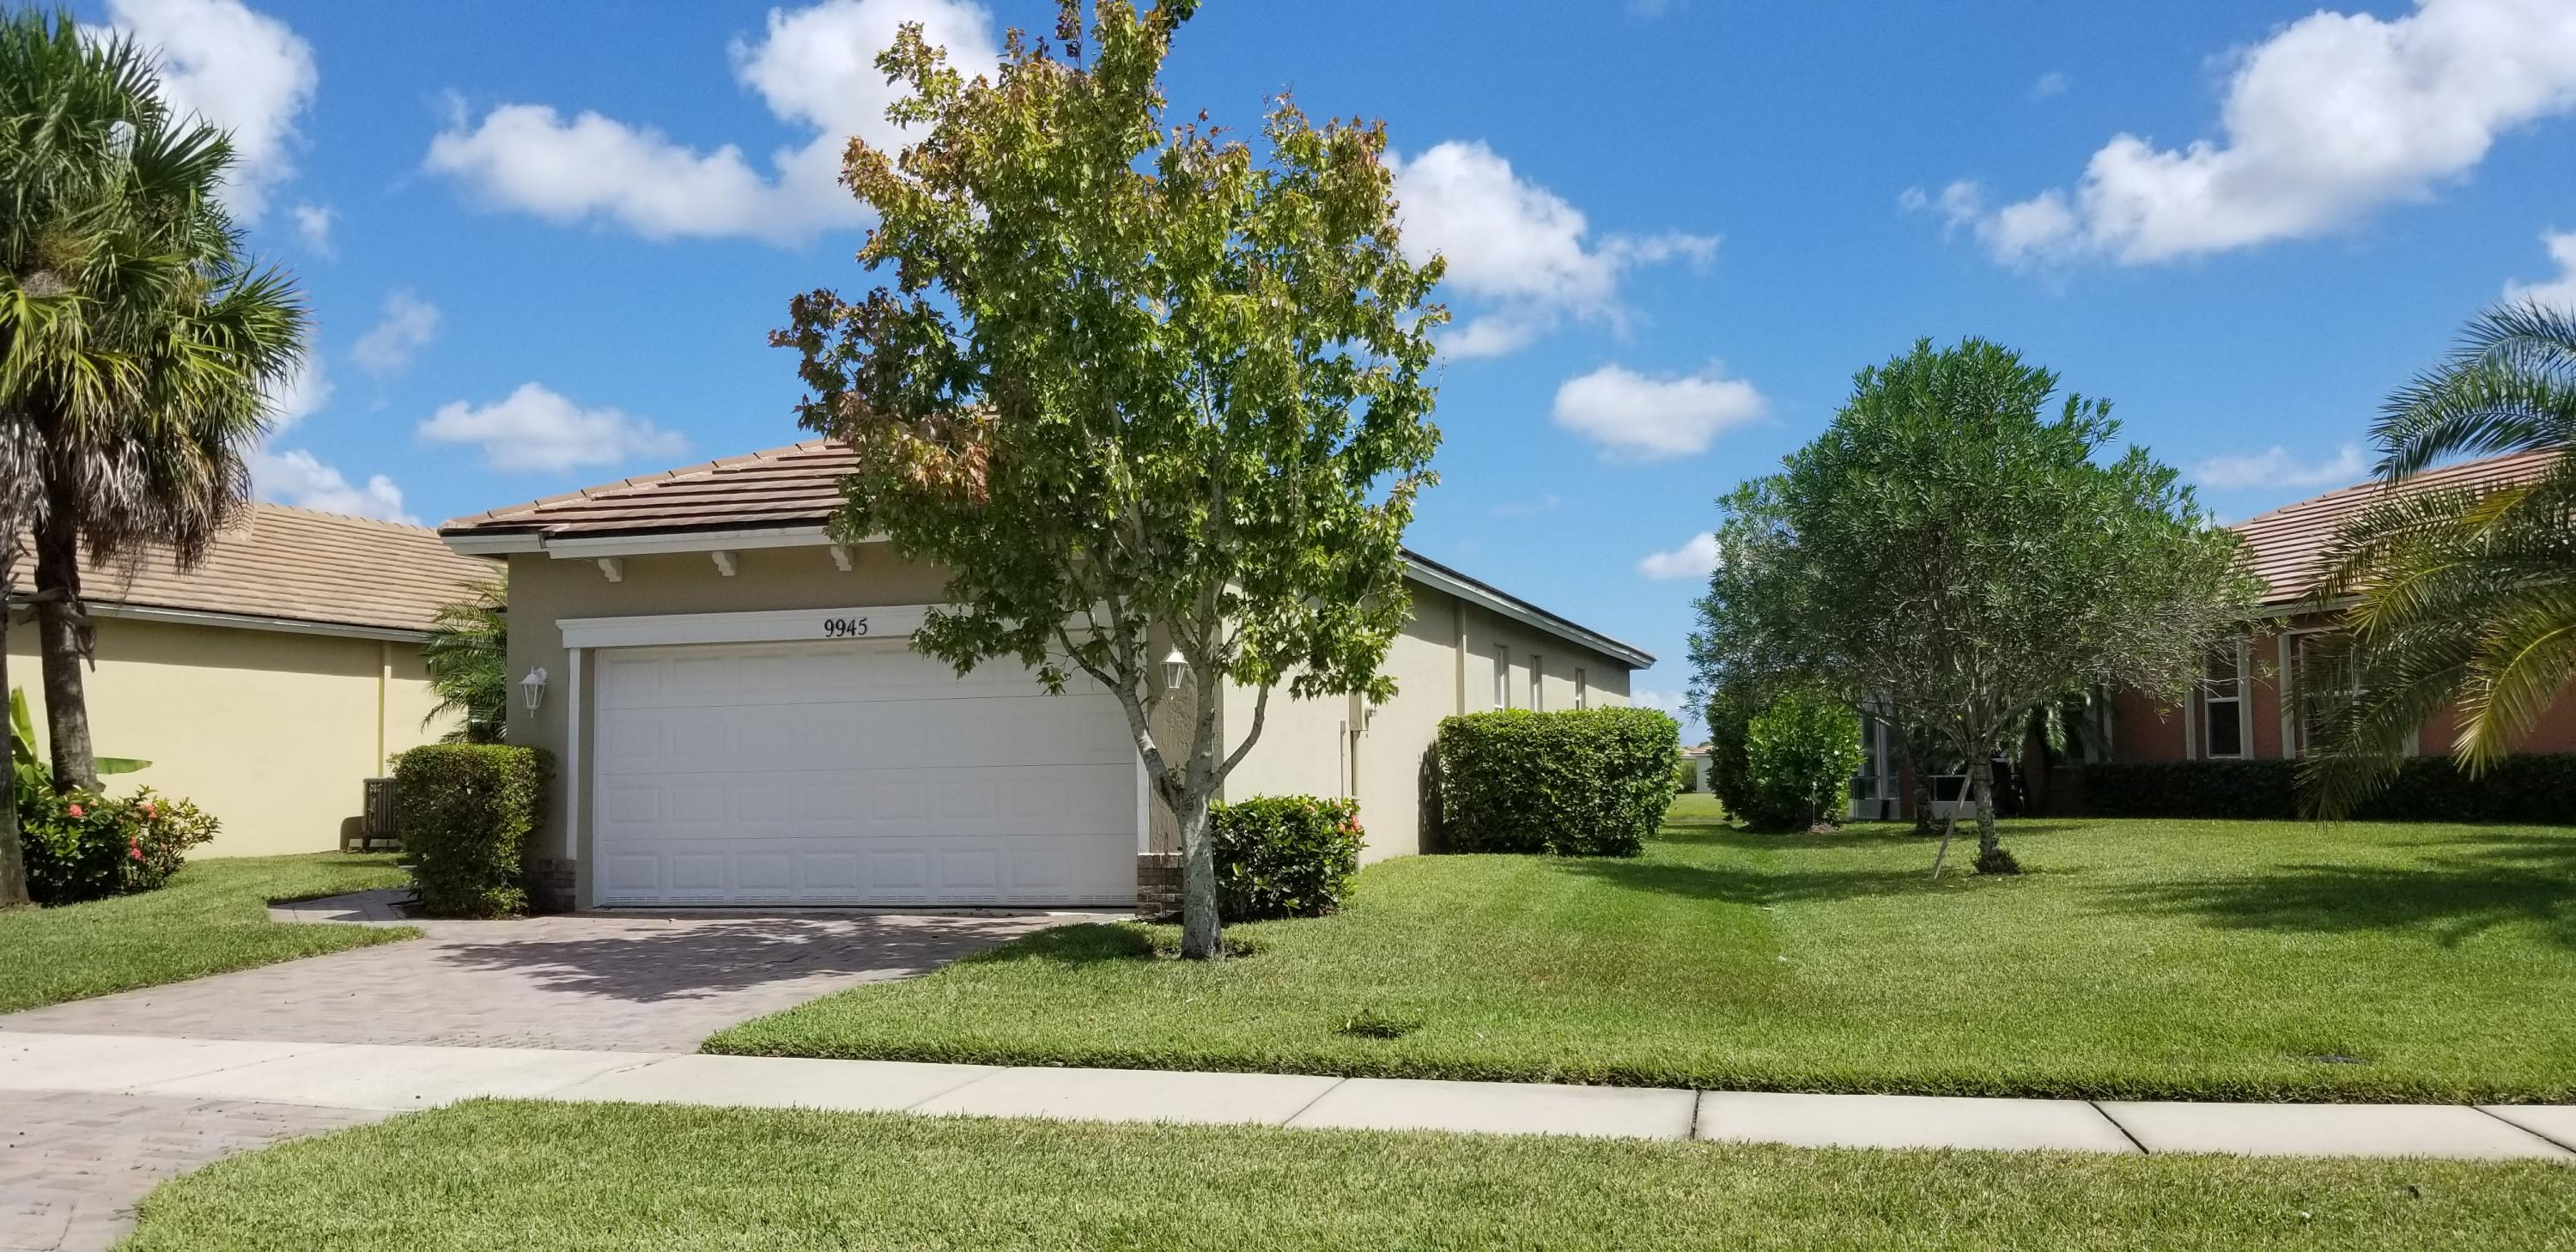 Open floor plan, Georgian Model, Waterfront location in Beautiful Heritage Oaks in Tradition. Large Kitchen, True Three Bedroom, Tile in living areas. Home has been very well maintained! Low Hoa includes: Basic cable, Internet, Lawn Care, Monitored Alarm, Pest Control, Irrigation, Community Pool and Fitness center, Manned Gate, On Site Property Manager. This home is priced to sell!